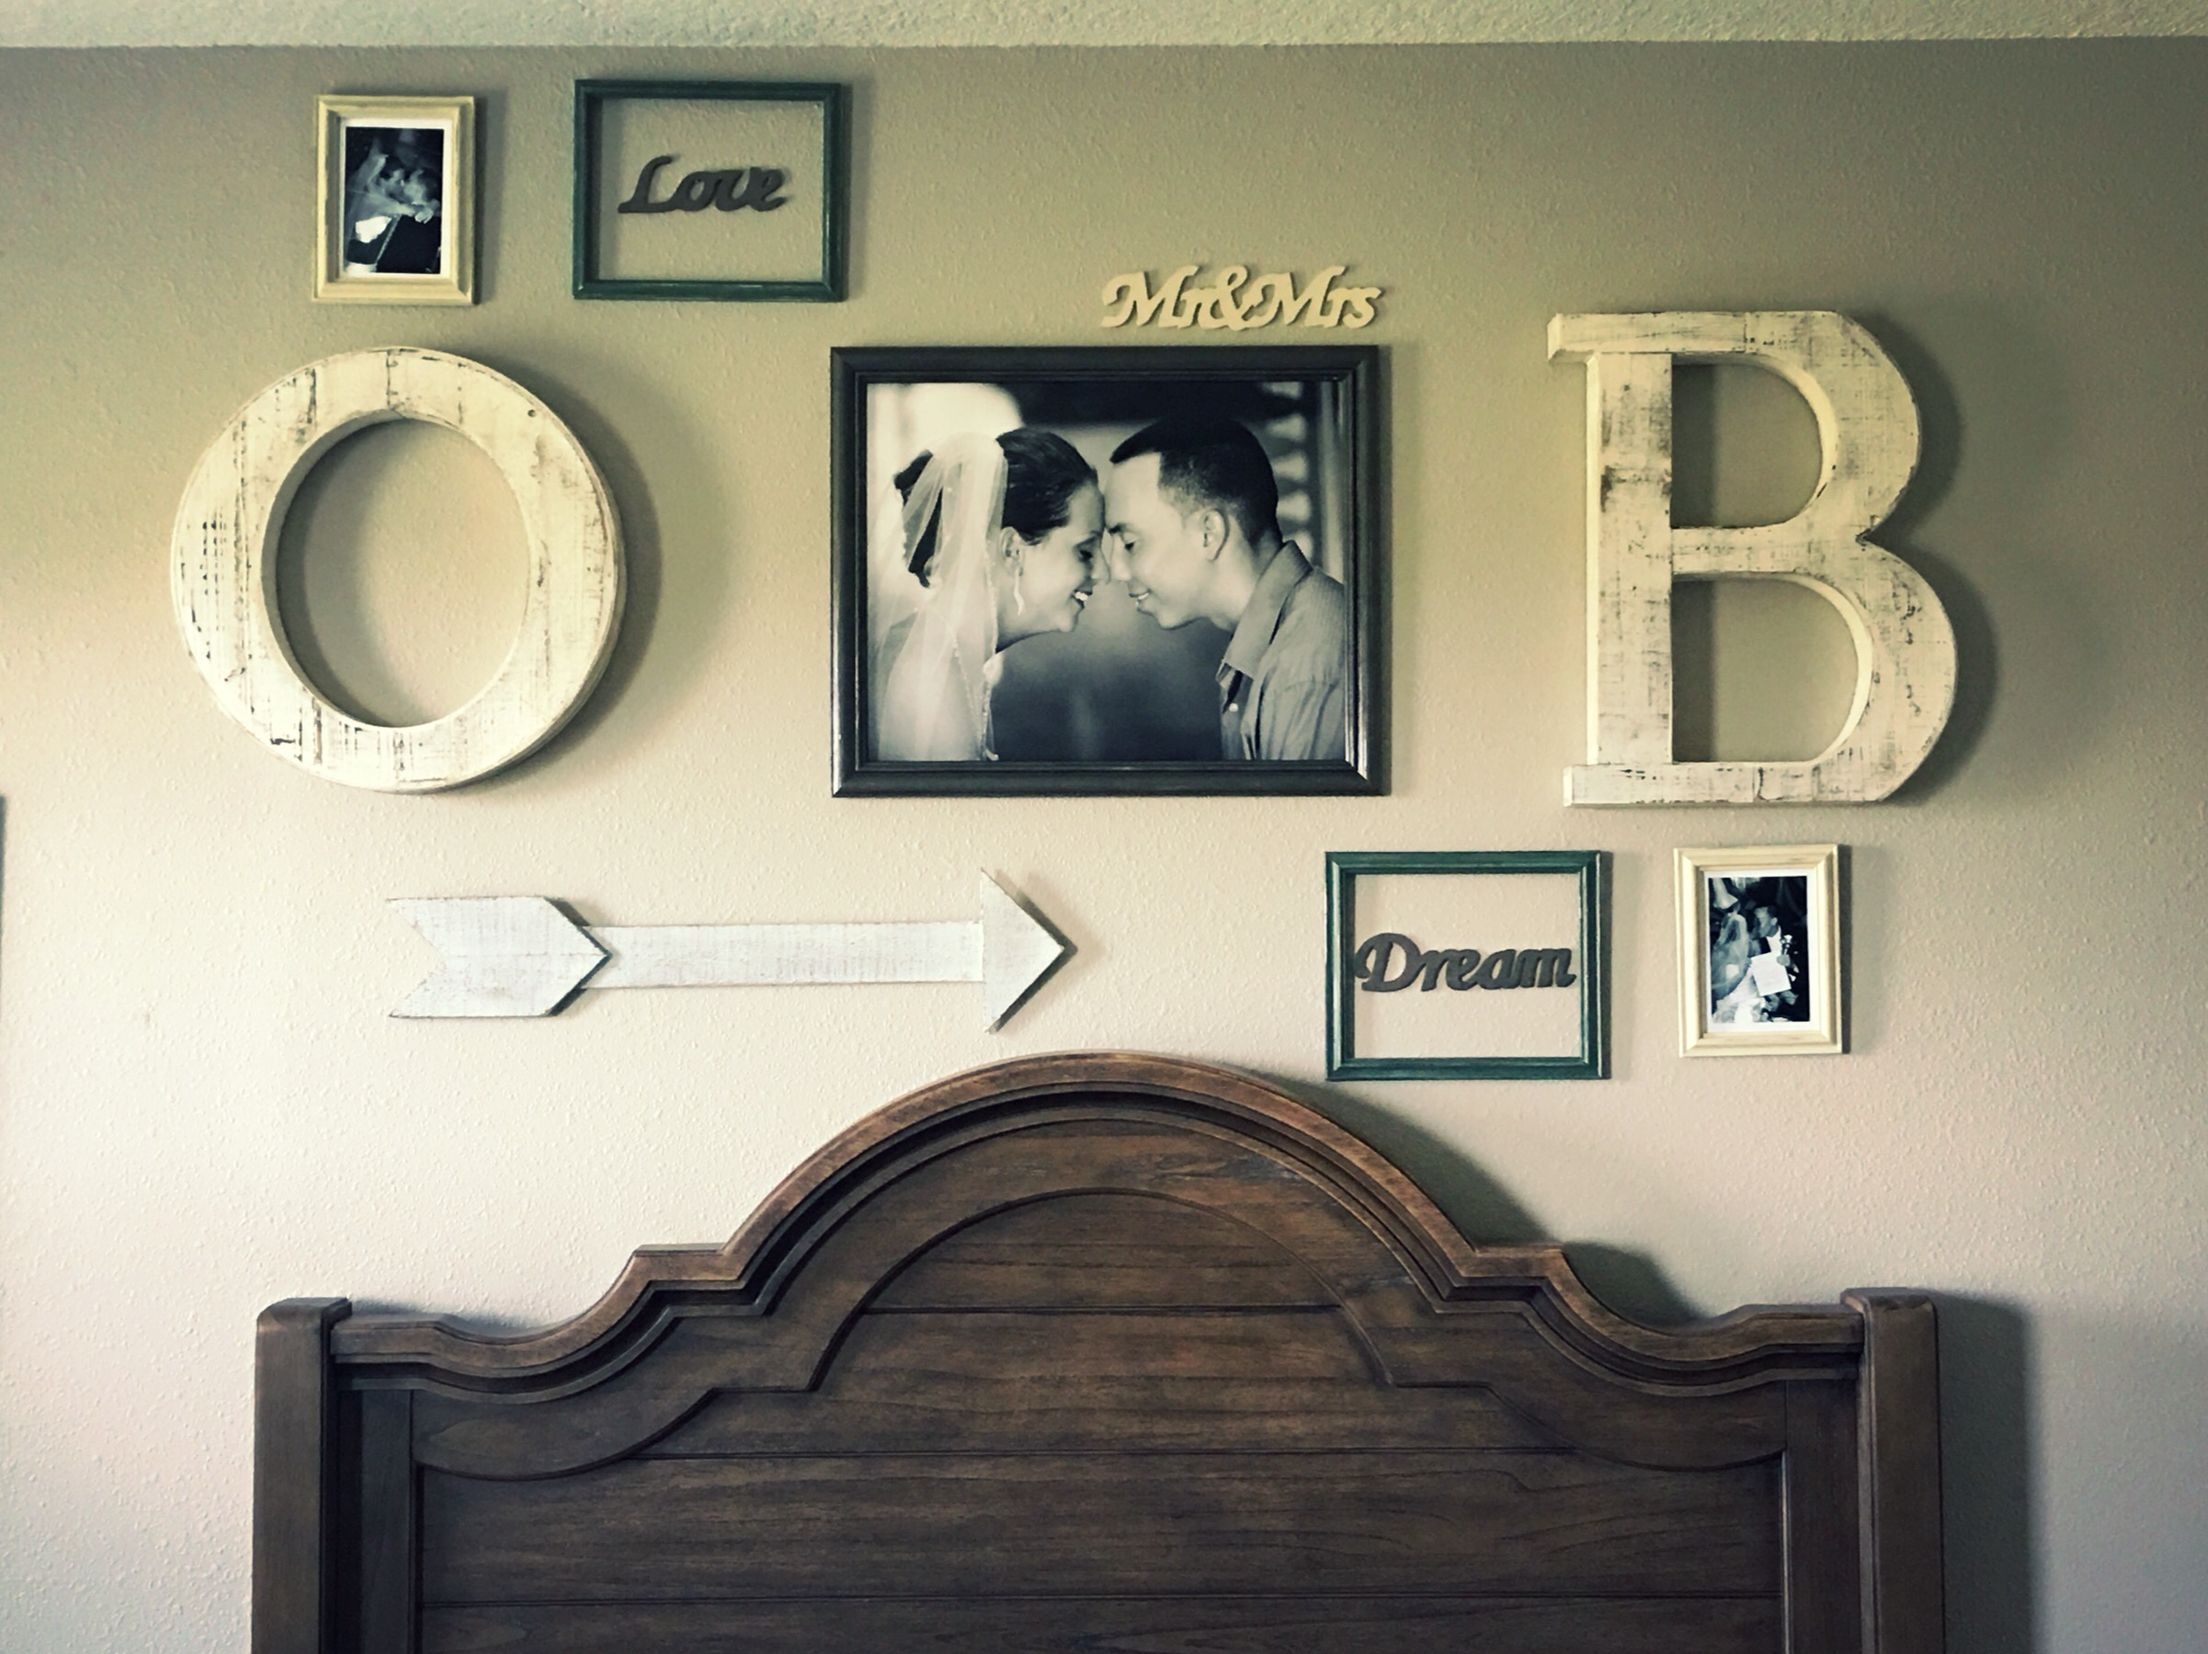 Newlywed Bedroom Rustic Theme Photo Wall Picture Wall His And Hers Bedroom